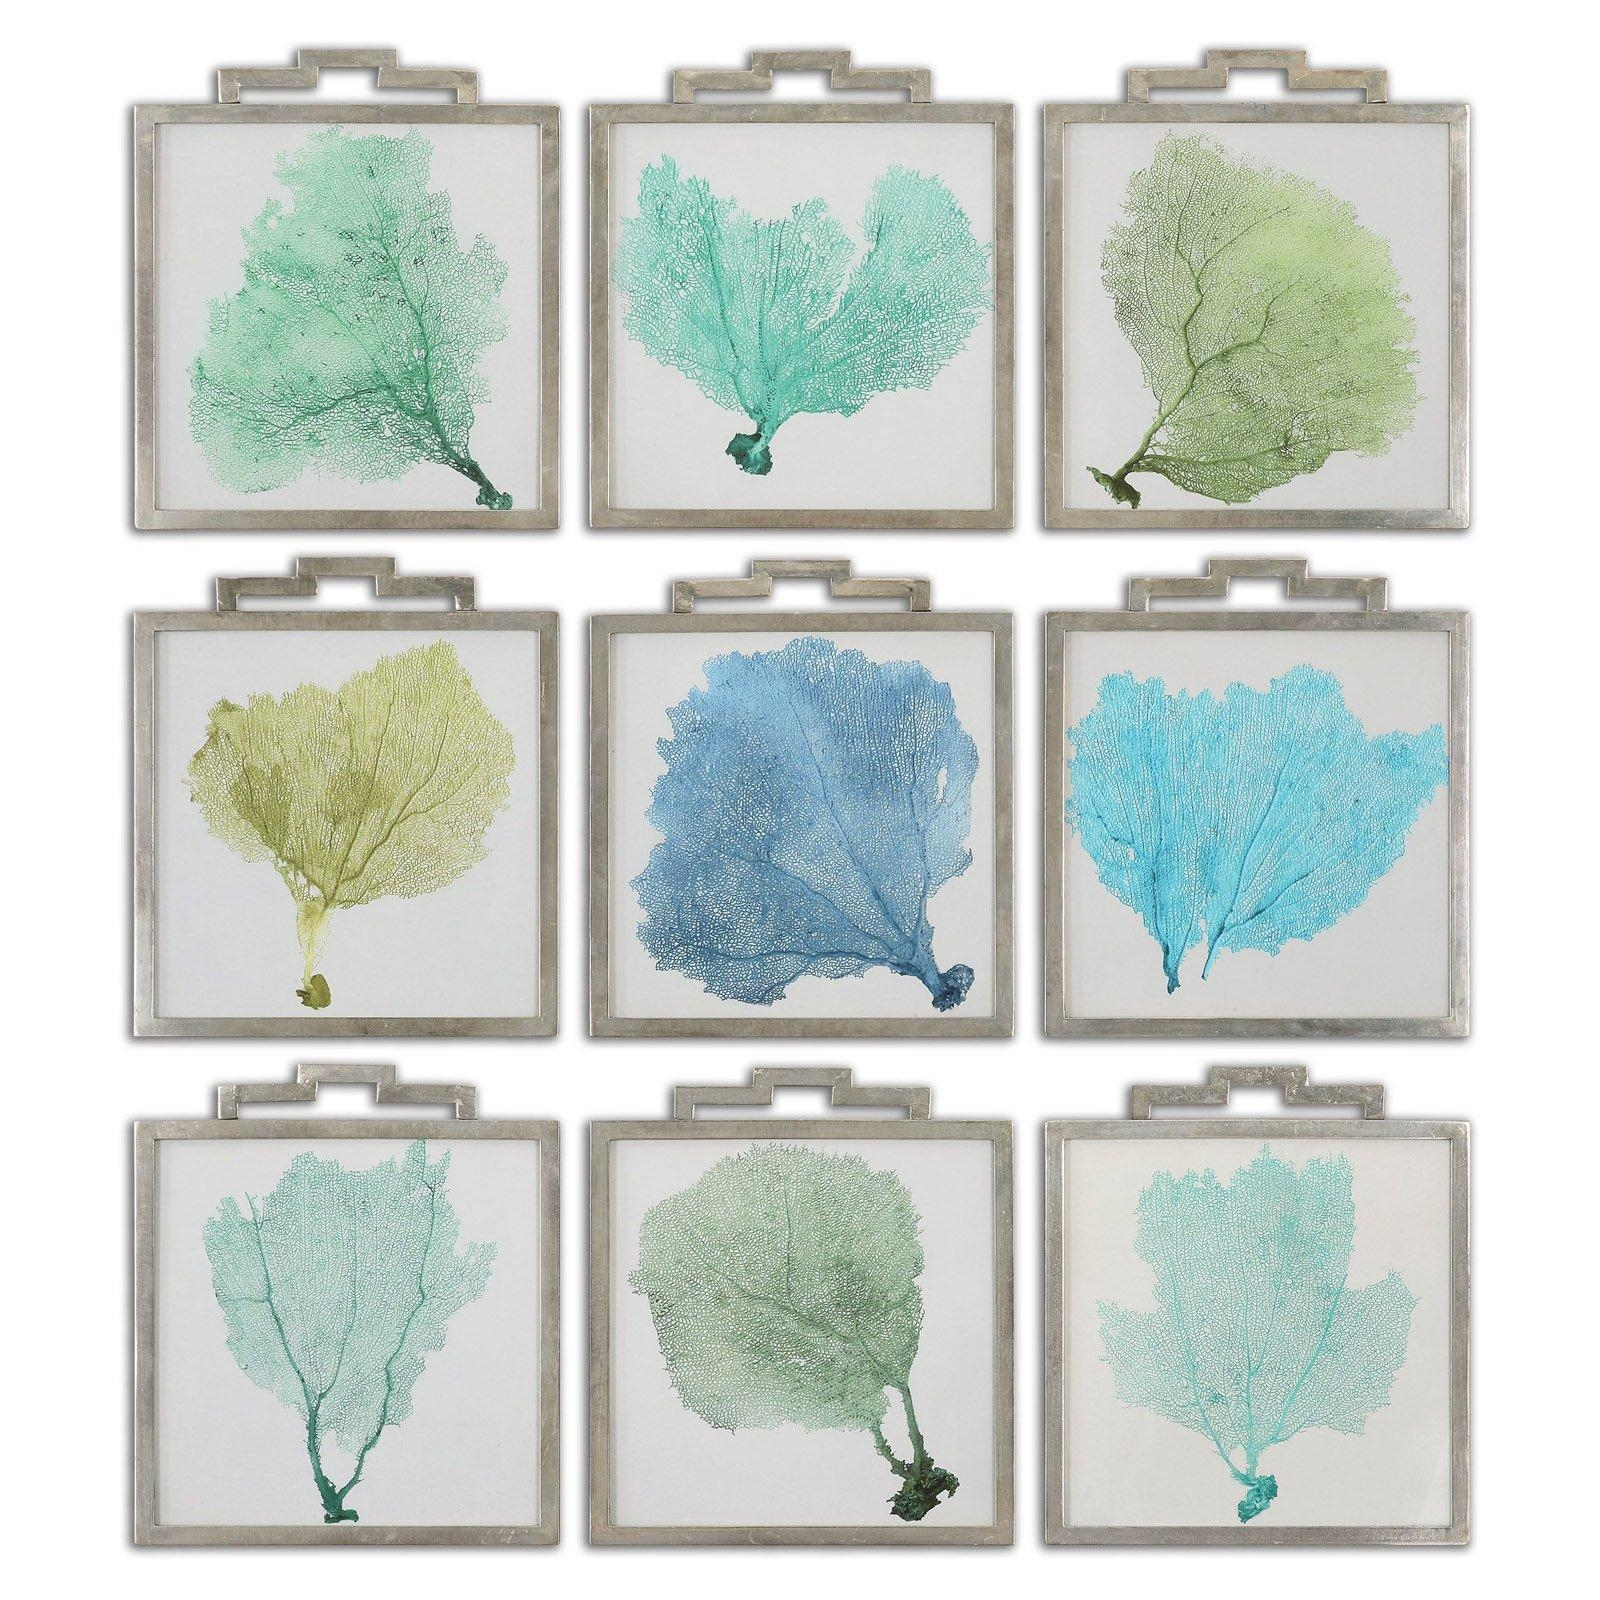 Uttermost Sea Fans Framed Art – Set Of 9 – 17W X 19H In (Image 18 of 20)